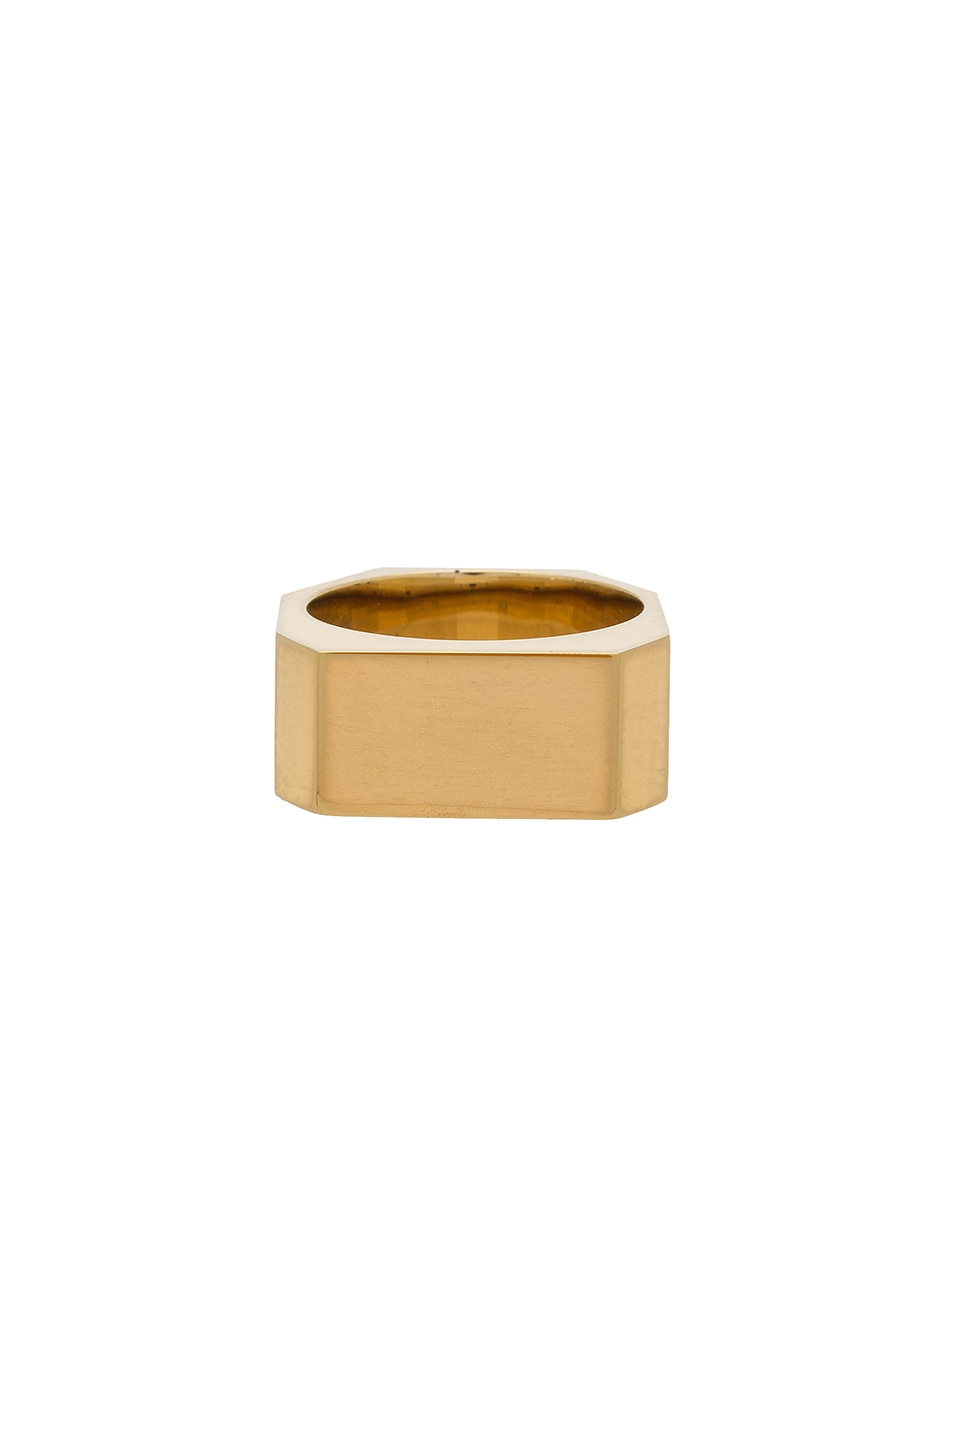 Amber Sceats Tex Ring in Gold